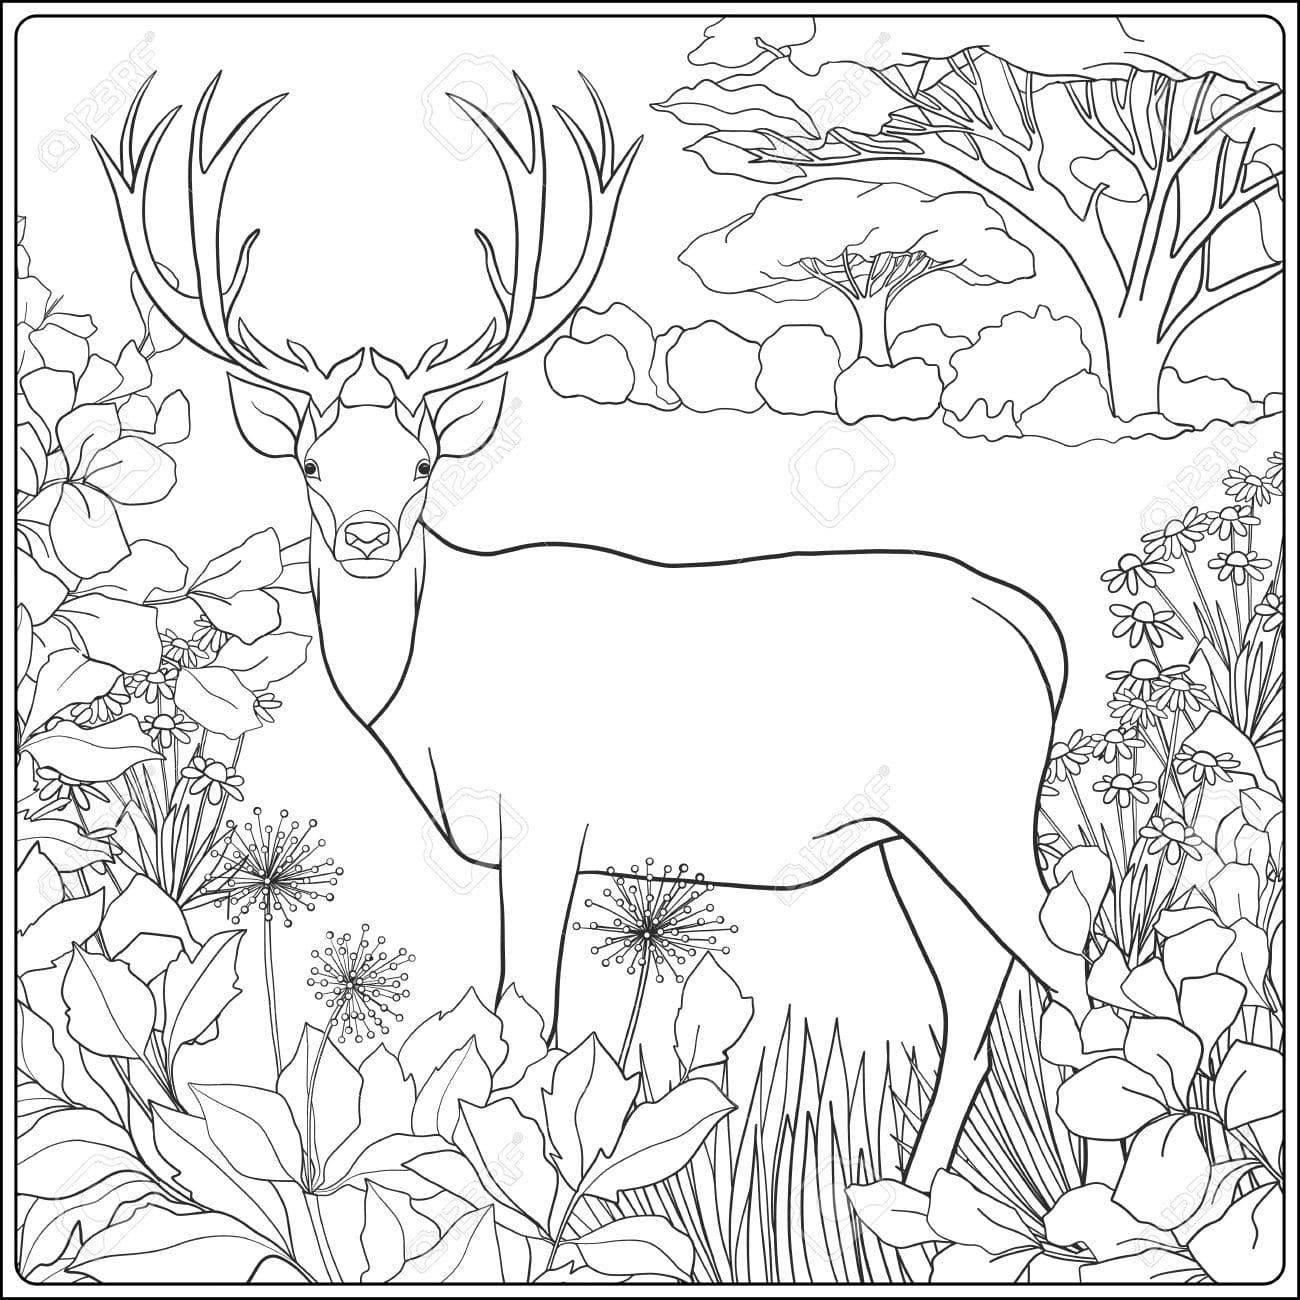 Coloring Pages for Adults. All the Topics! Print for Free